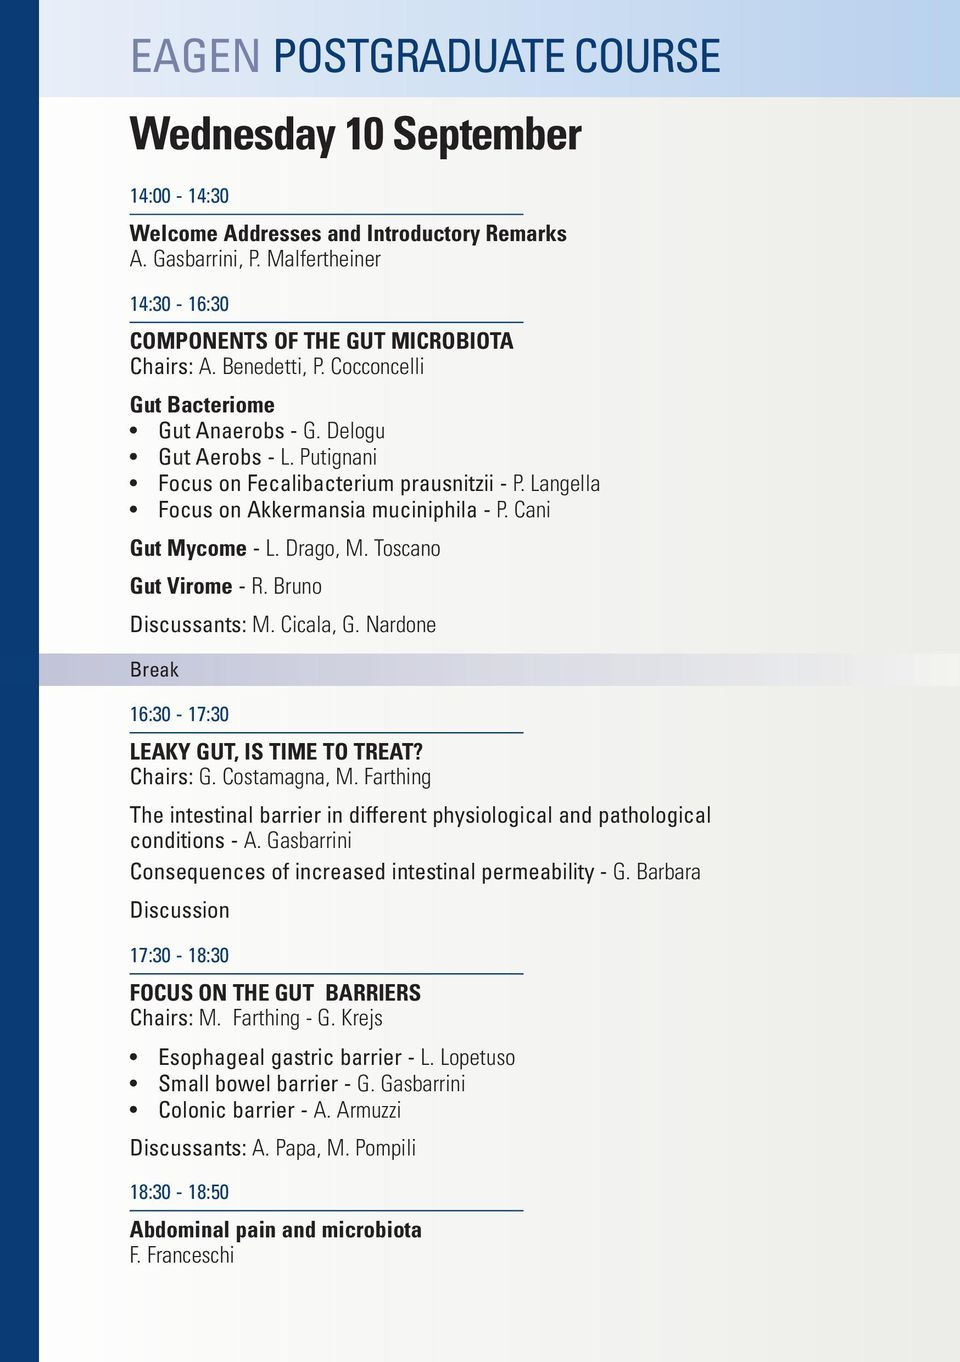 Cani Gut Mycome - L. Drago, M. Toscano Gut Virome - R. Bruno Discussants: M. Cicala, G. Nardone Break 16:30-17:30 LEAKY GUT, IS TIME TO TREAT? Chairs: G. Costamagna, M.